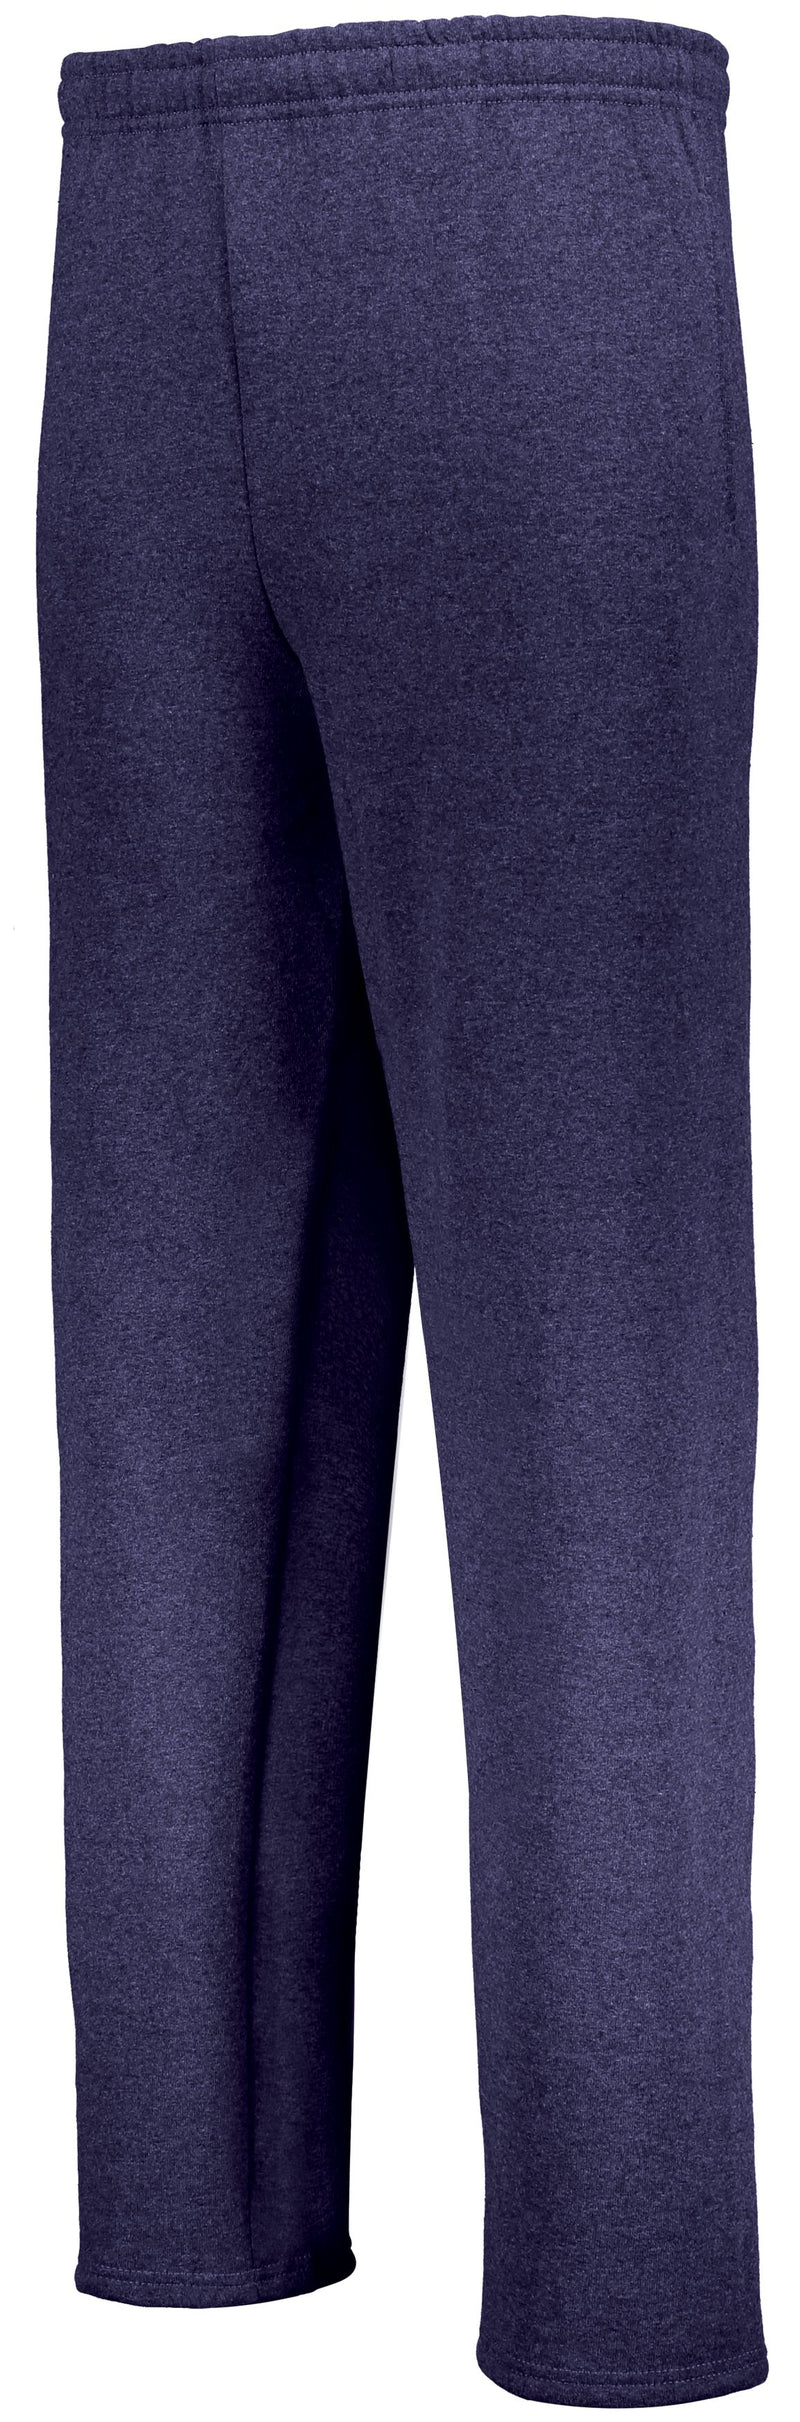 YOUTH DRI-POWER OPEN BOTTOM POCKET SWEATPANT